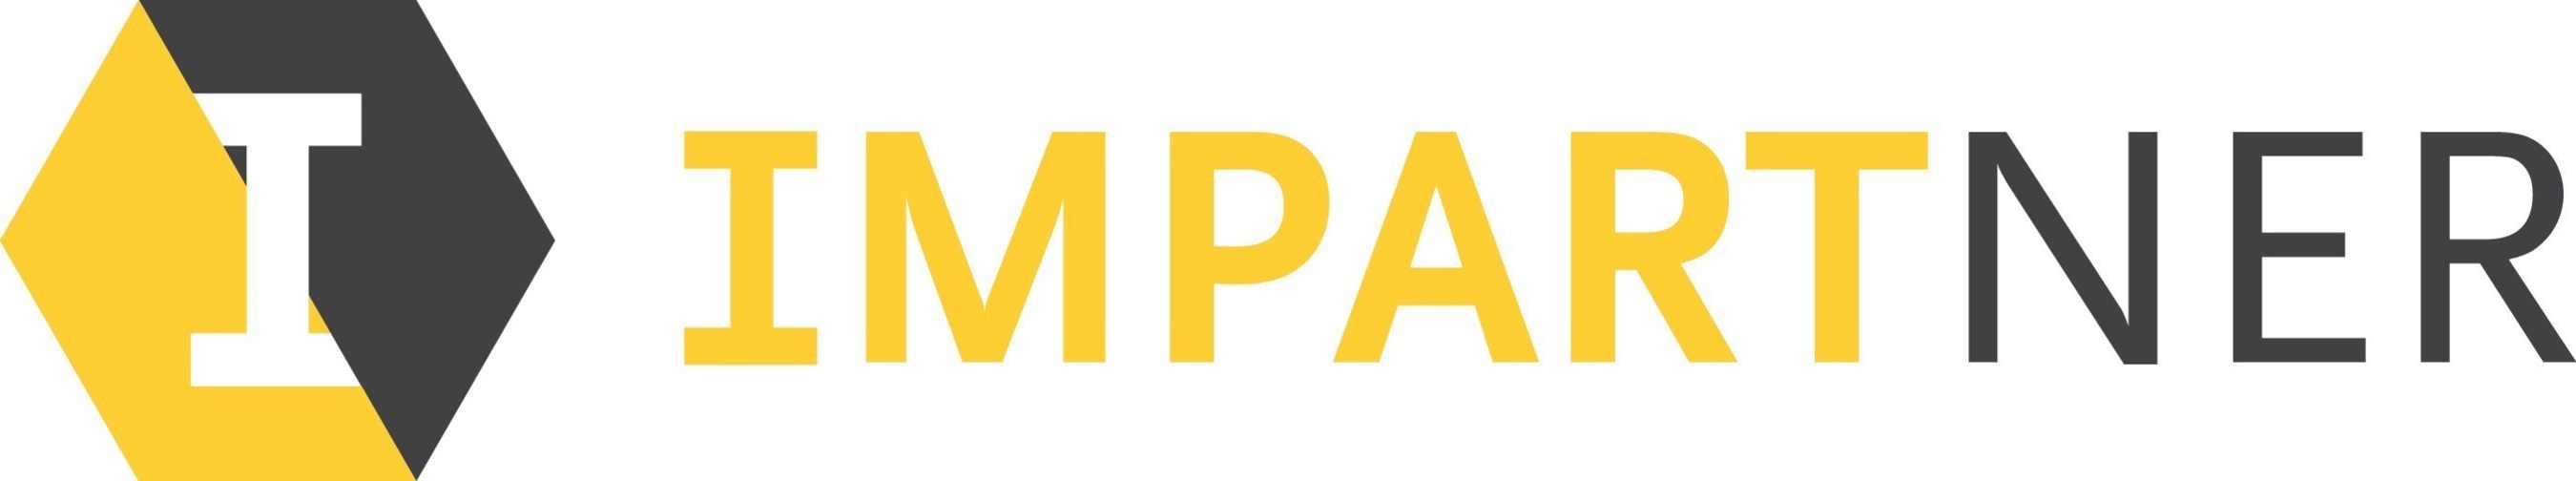 Impartner is a leader in Saas-based Partner Relationship Management solutions